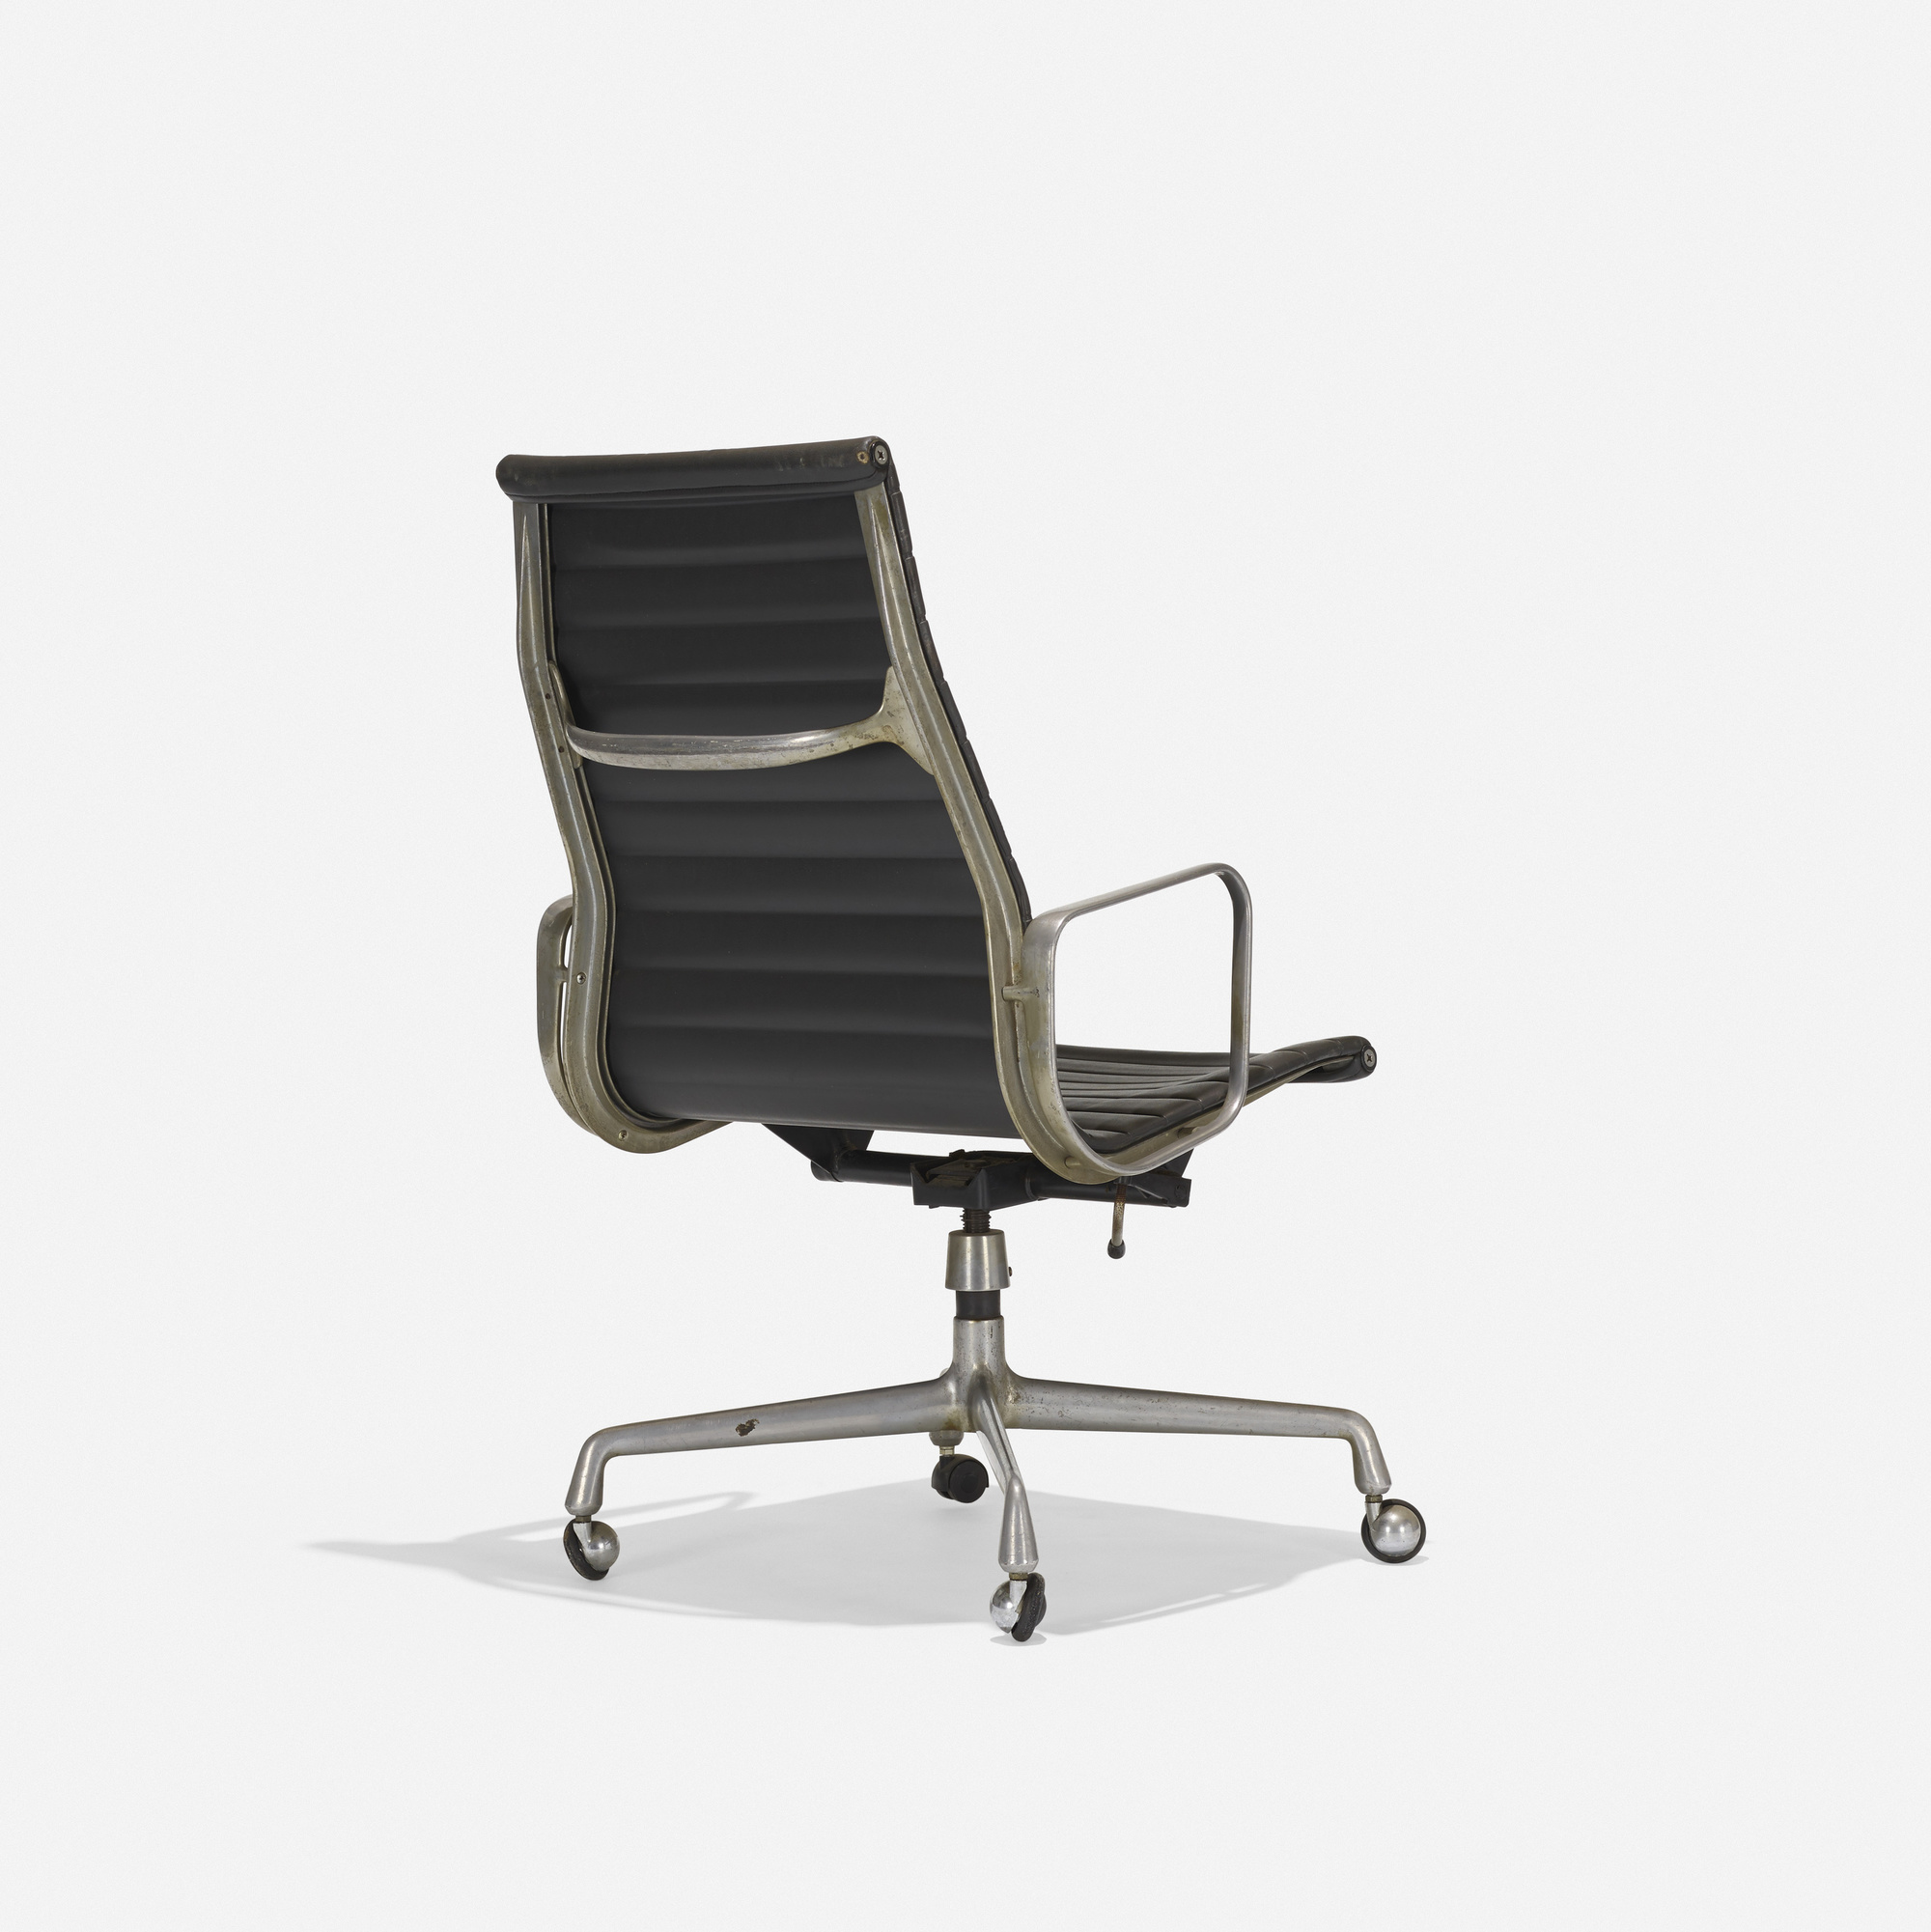 221 charles and ray eames aluminum group lounge chair. Black Bedroom Furniture Sets. Home Design Ideas